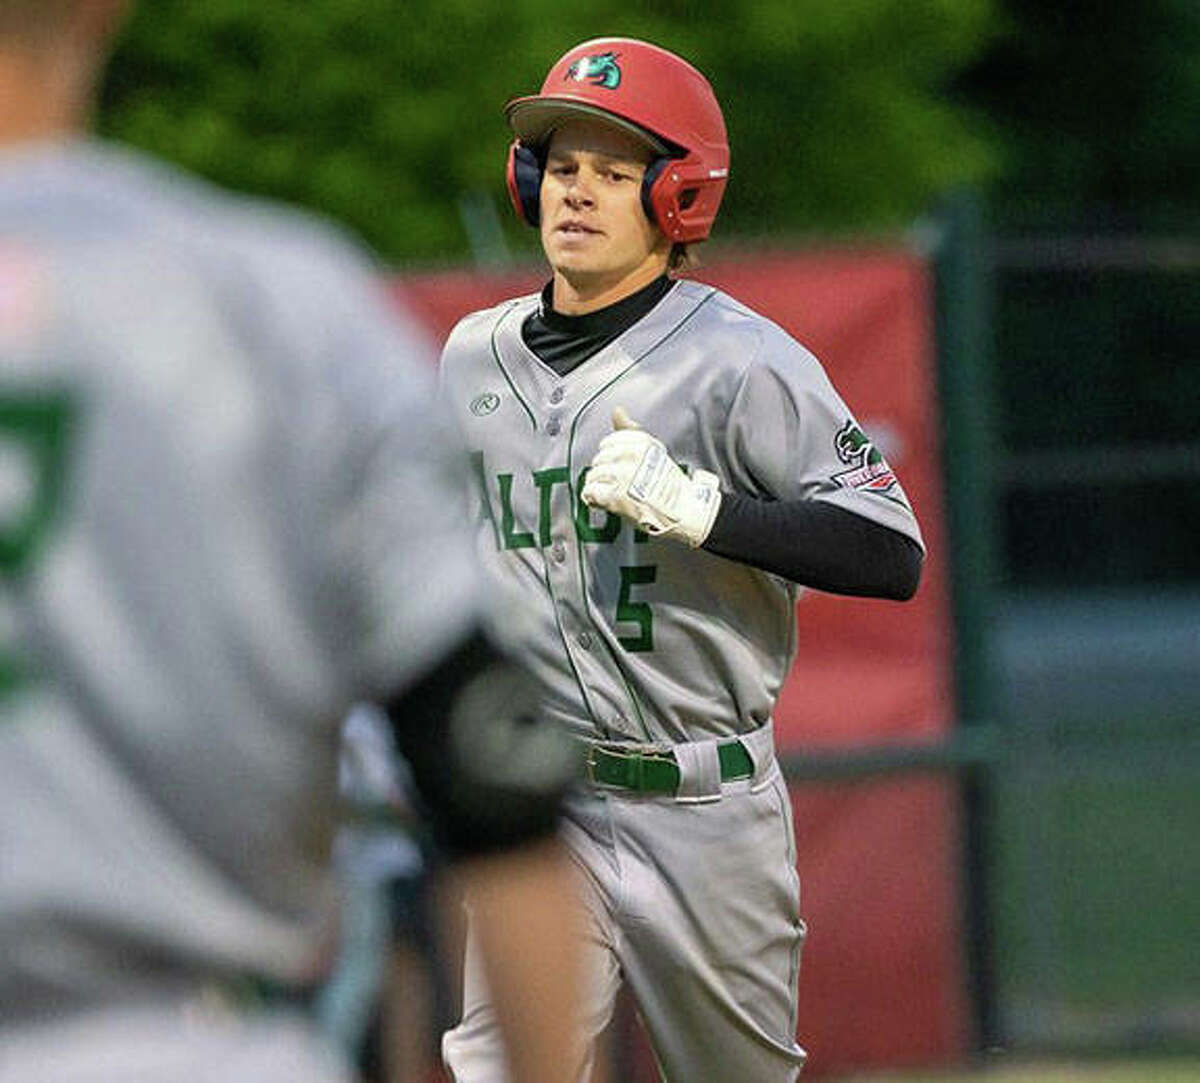 Blake Burris scored one of the two Alton River Dragons runs in an 8-2 loss to the Cape Catfish Sunday night in Cape Girardeau. Burris scored on a single by Brady Mutz.